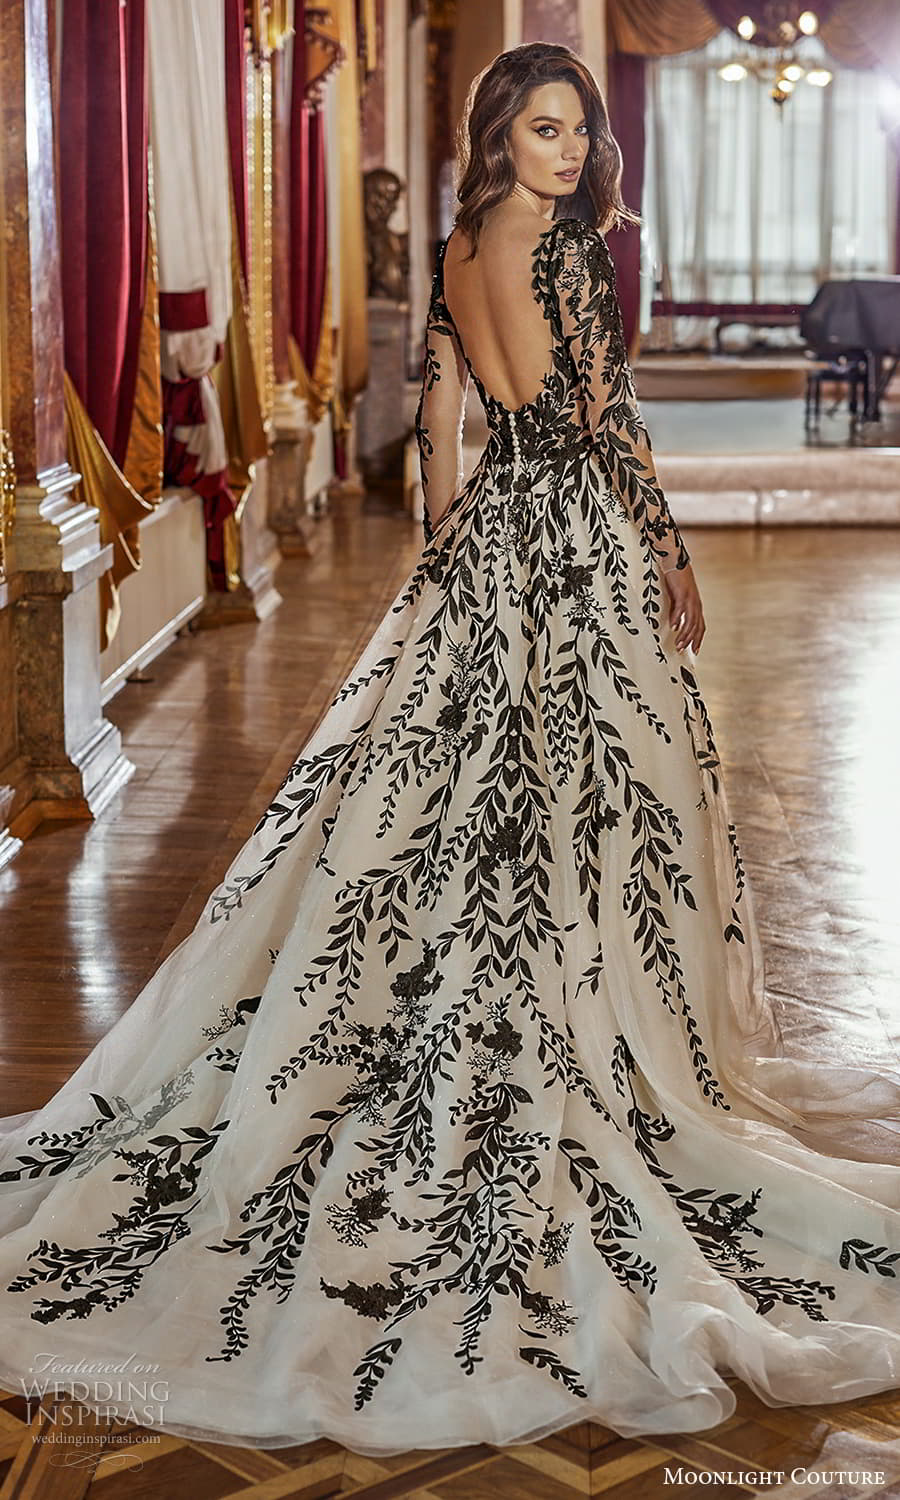 moonlight couture fall 2021 bridal sheer long sleeves square necklnie fully embellished black color a line ball gown wedding dress chapel train scoop back (8) bv